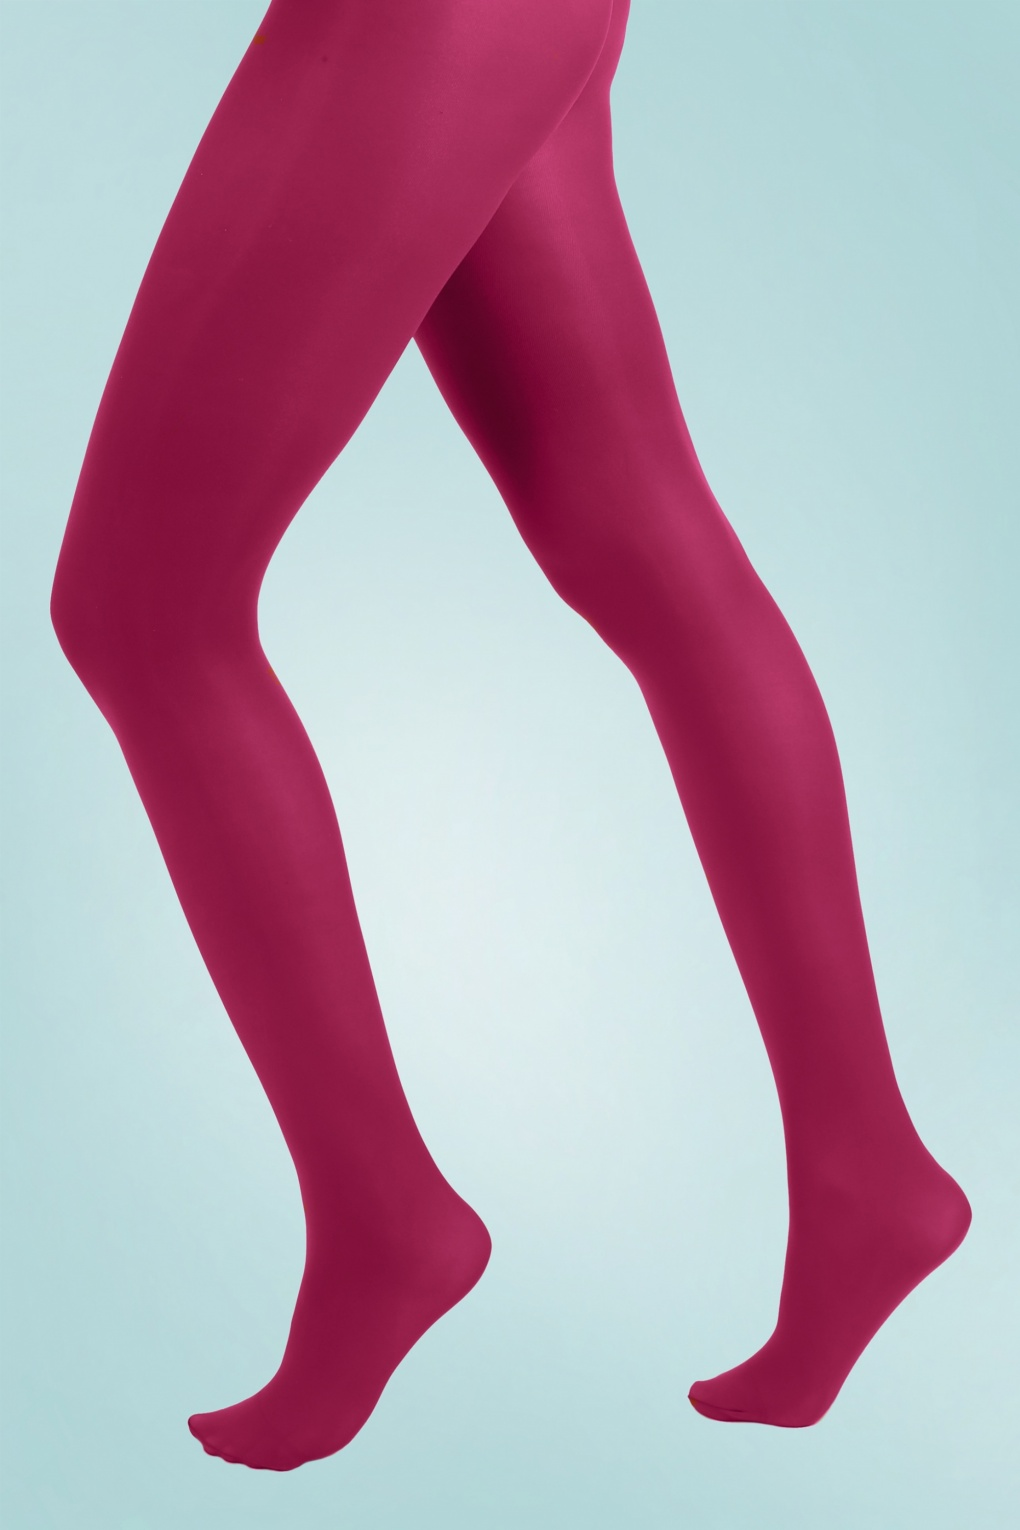 1960s Style Dresses, Clothing, Shoes UK 60s Opaque Tights in Cerise £7.08 AT vintagedancer.com